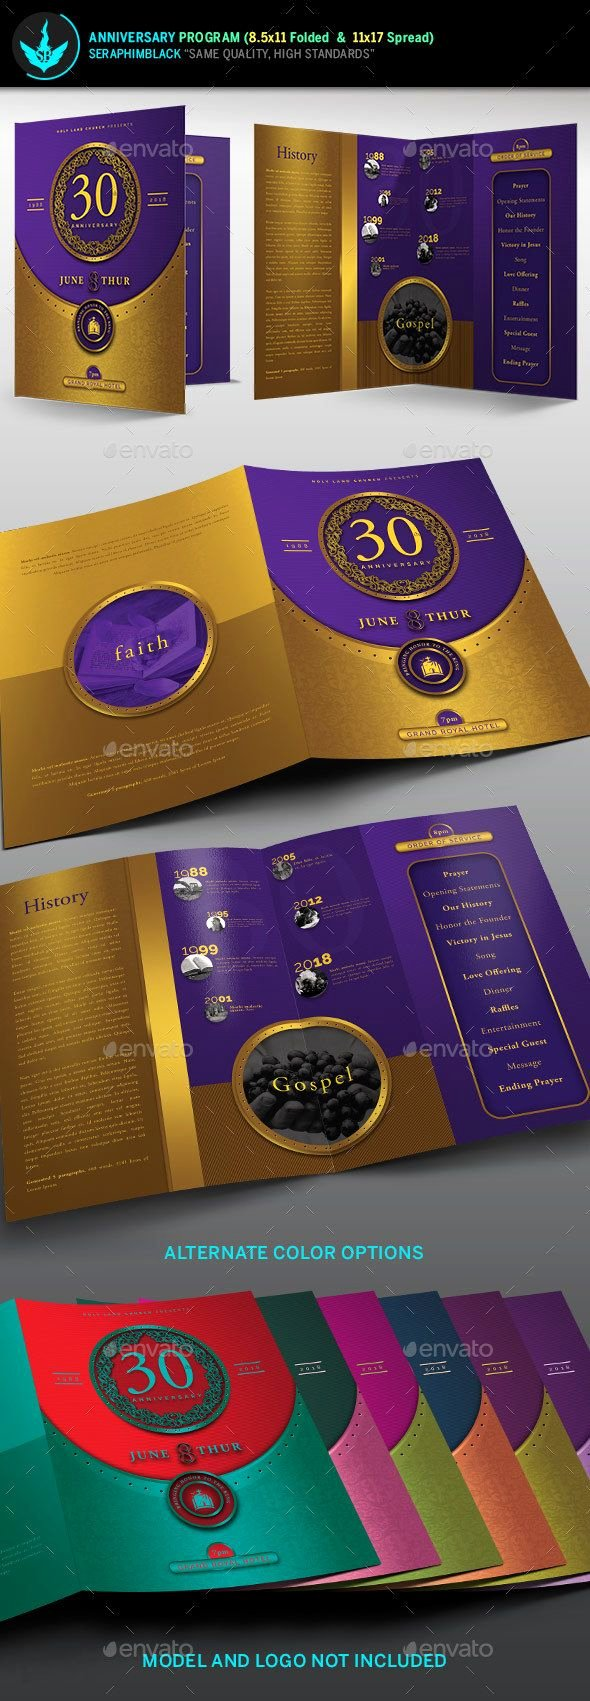 Church Anniversary Program Template Lovely 12 Best Church Anniversary Images On Pinterest